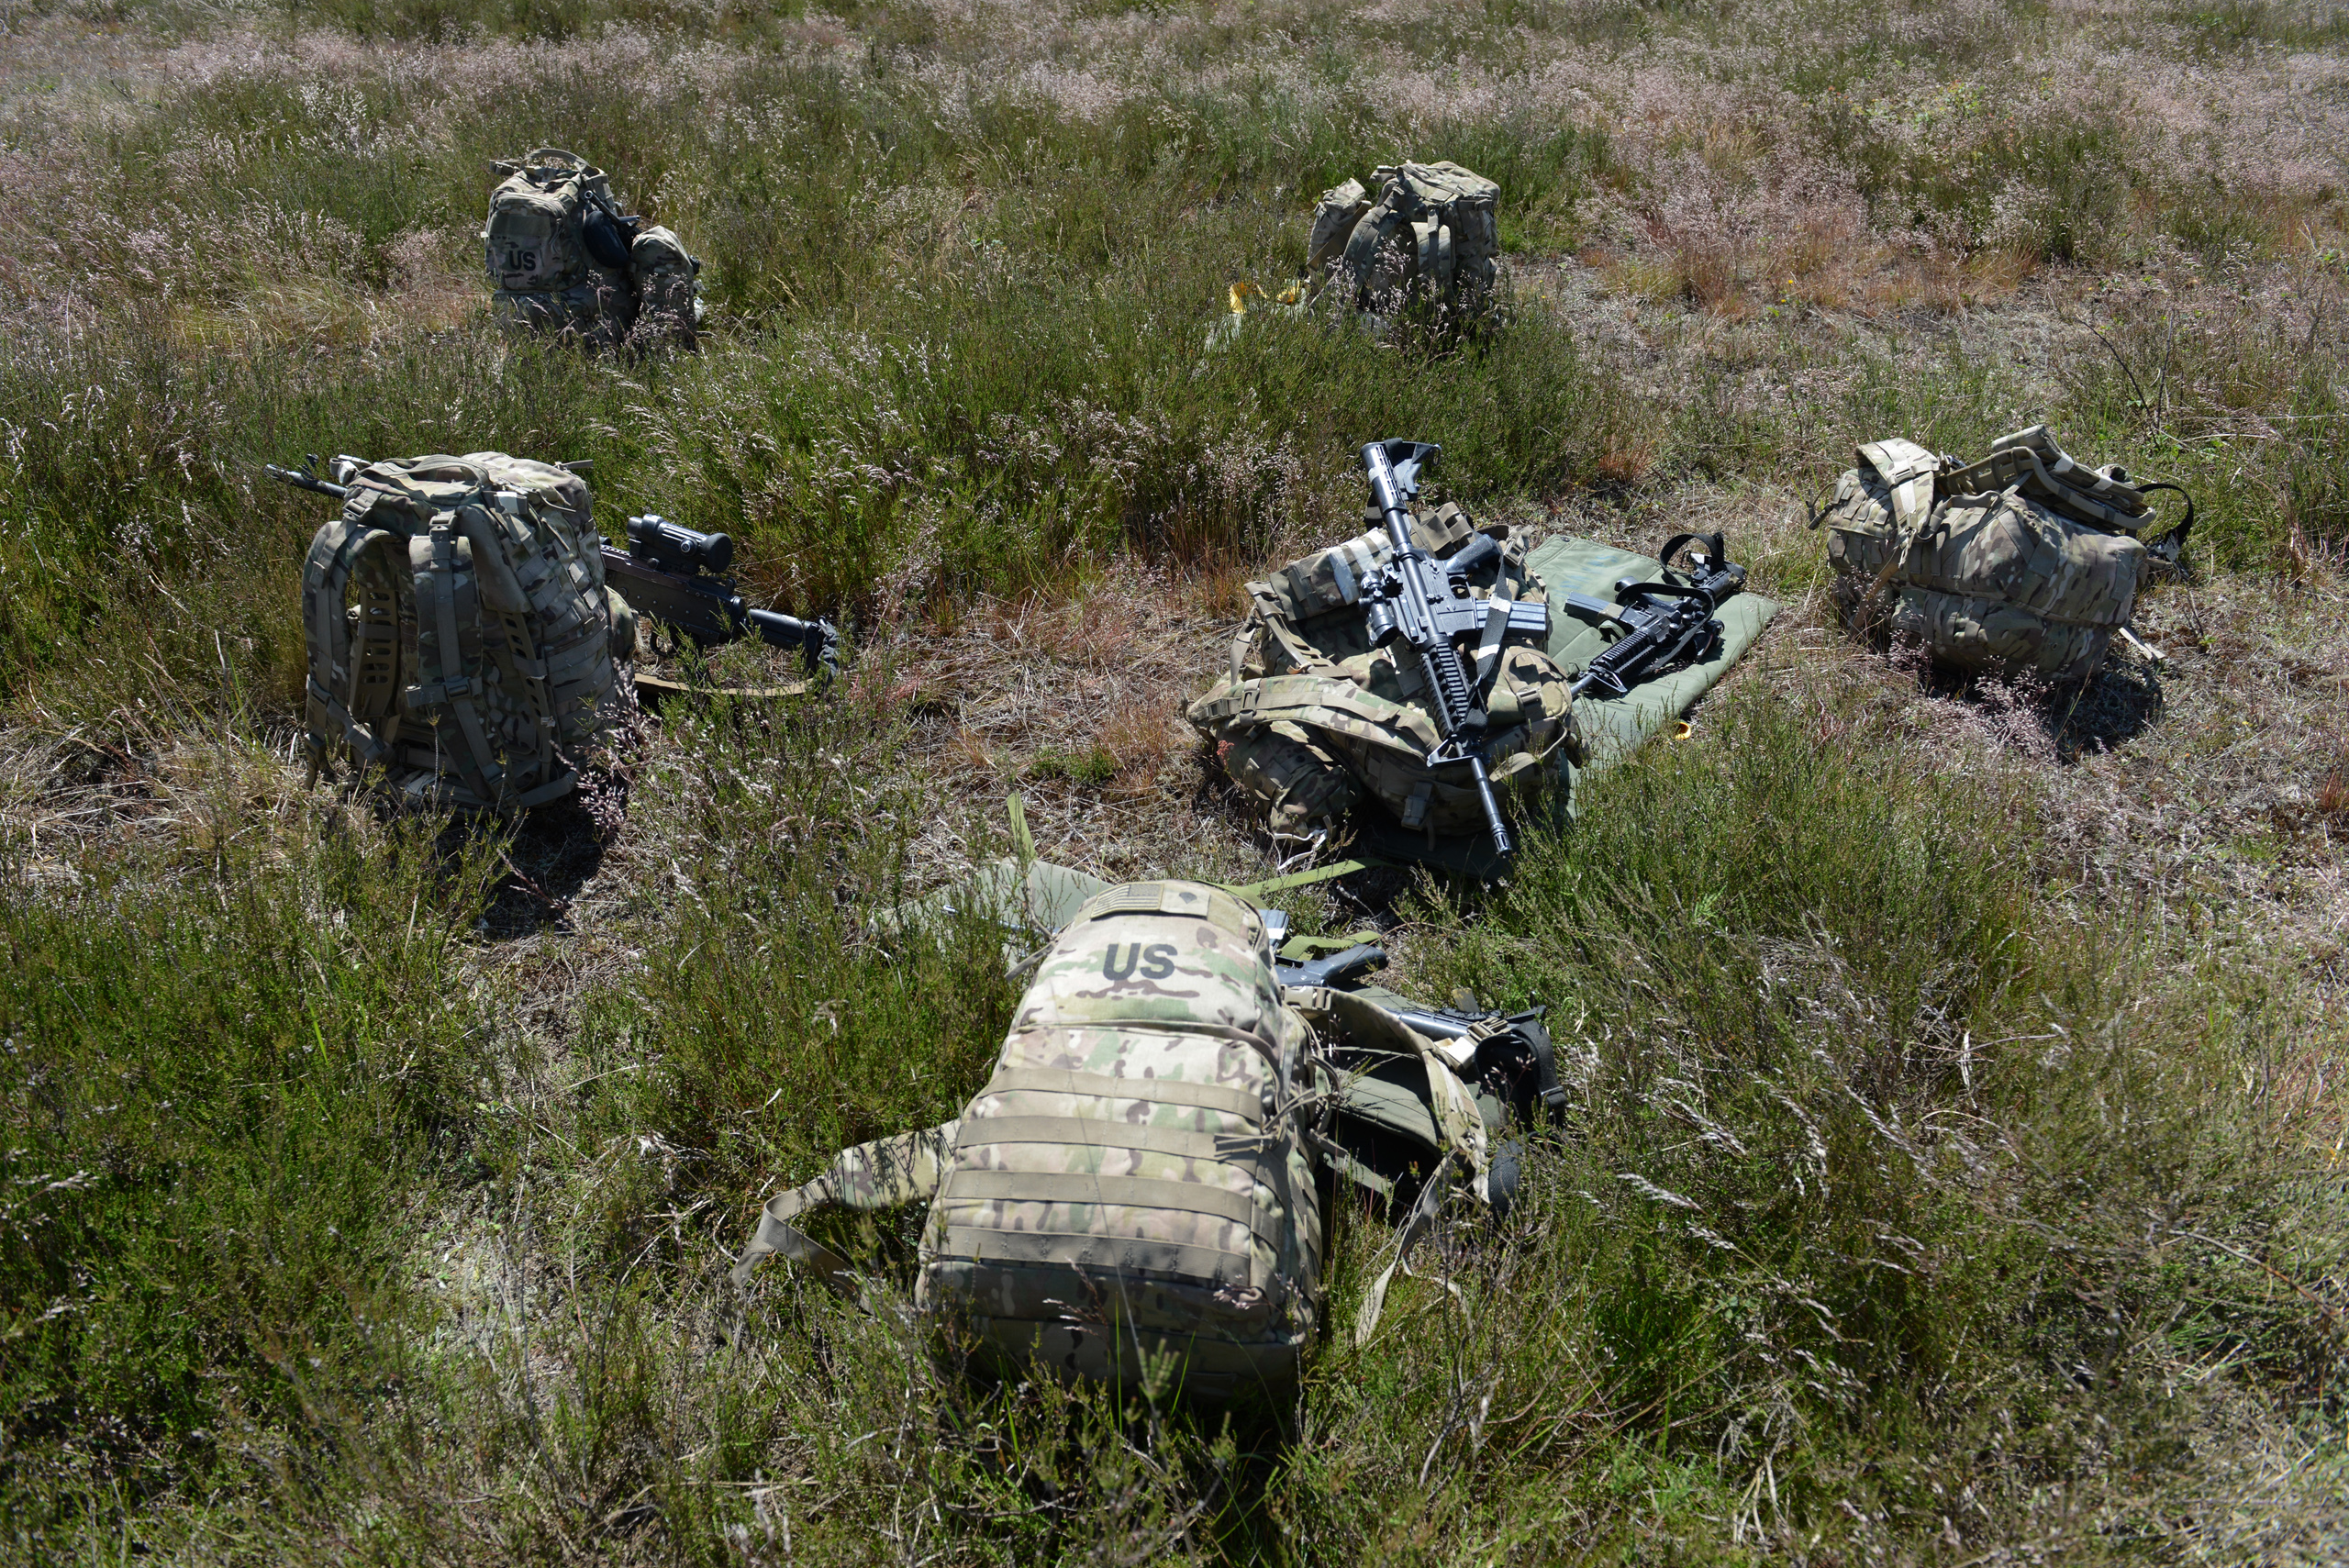 Backpacks belonging to the paratroopers of the Fourth of the 319th Airborne Field Artillery Regiment of the 173rd Infantry Brigade Combat Team lay on the ground following an airdrop from a C-17 aircraft that took off from Nuremberg, Germany and dropped at the Drawsko Pomorskie Training Area in Poland on June 15, 2015.